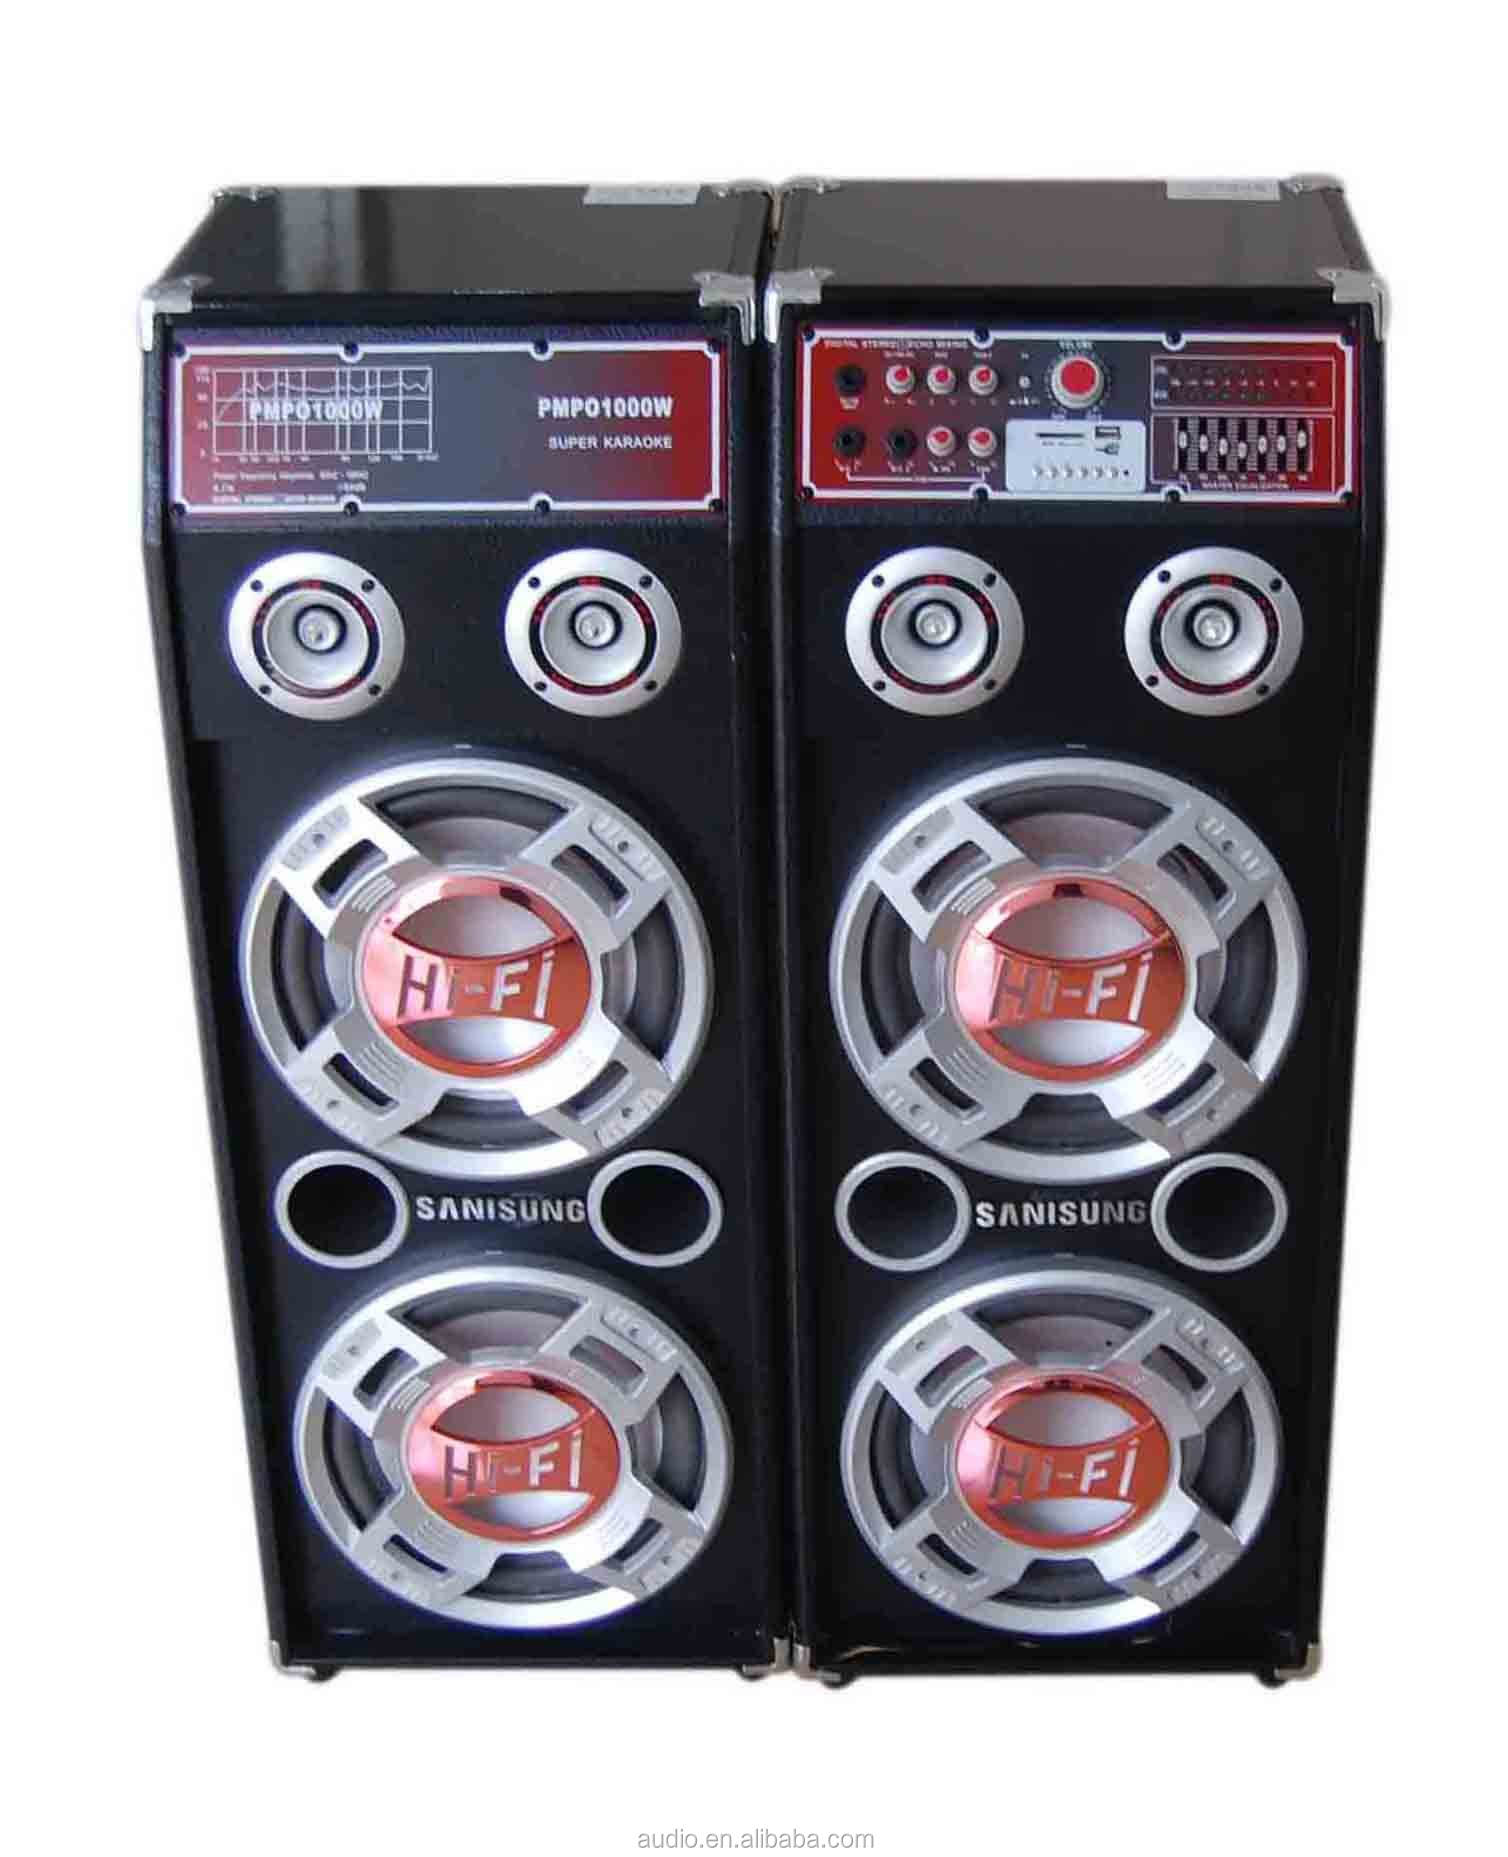 DJ system 2.0 pro outdoor stage sound speakers for sale